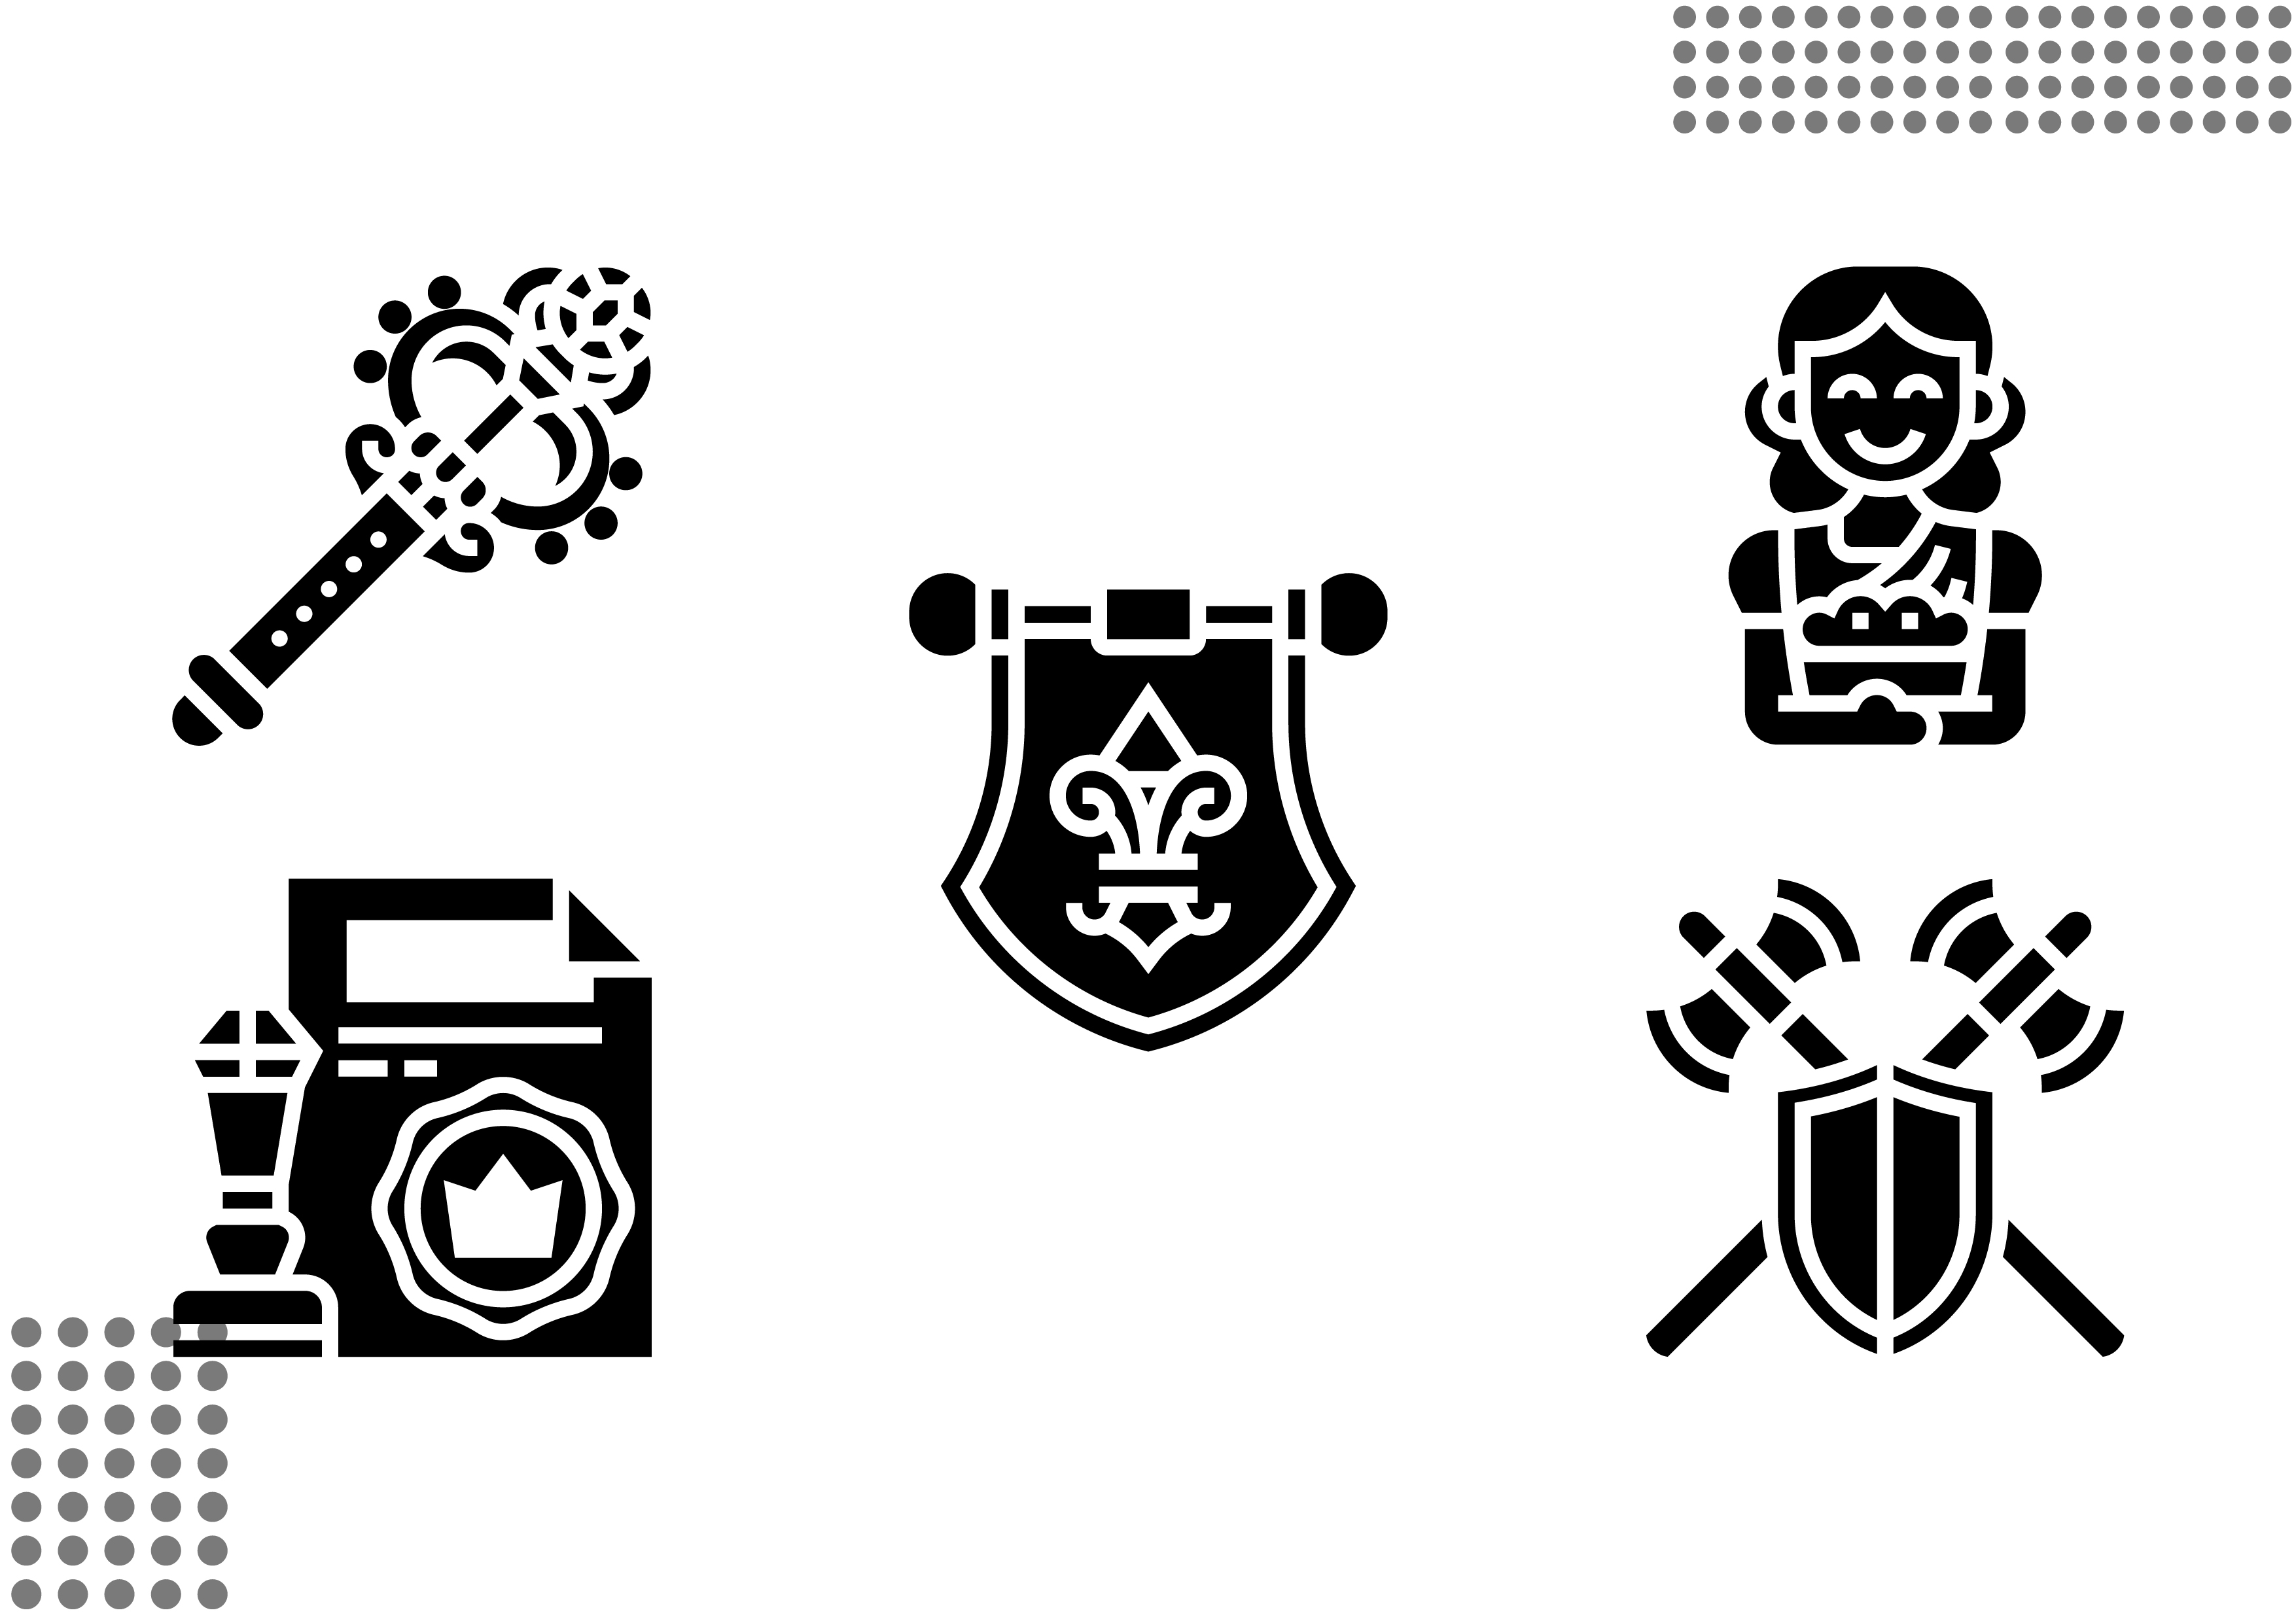 Download Free Royalty Element Fill Graphic By Cool Coolpkm3 Creative Fabrica for Cricut Explore, Silhouette and other cutting machines.